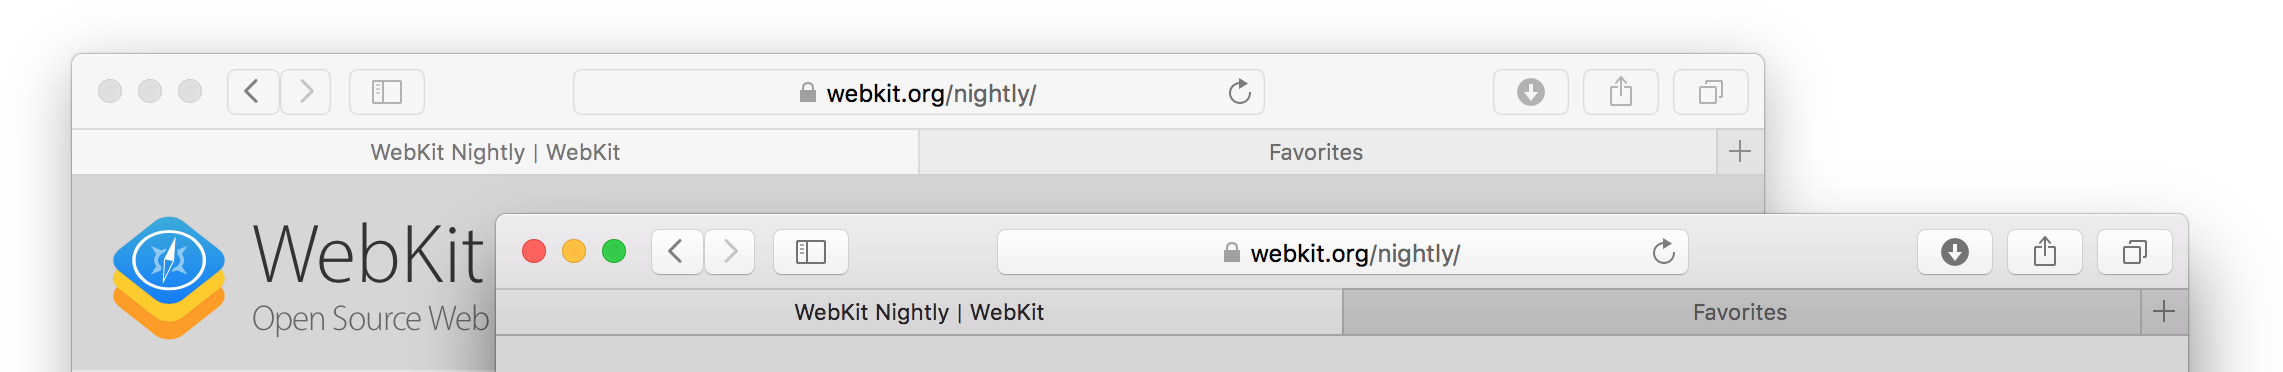 webkit-windows-active-inactive